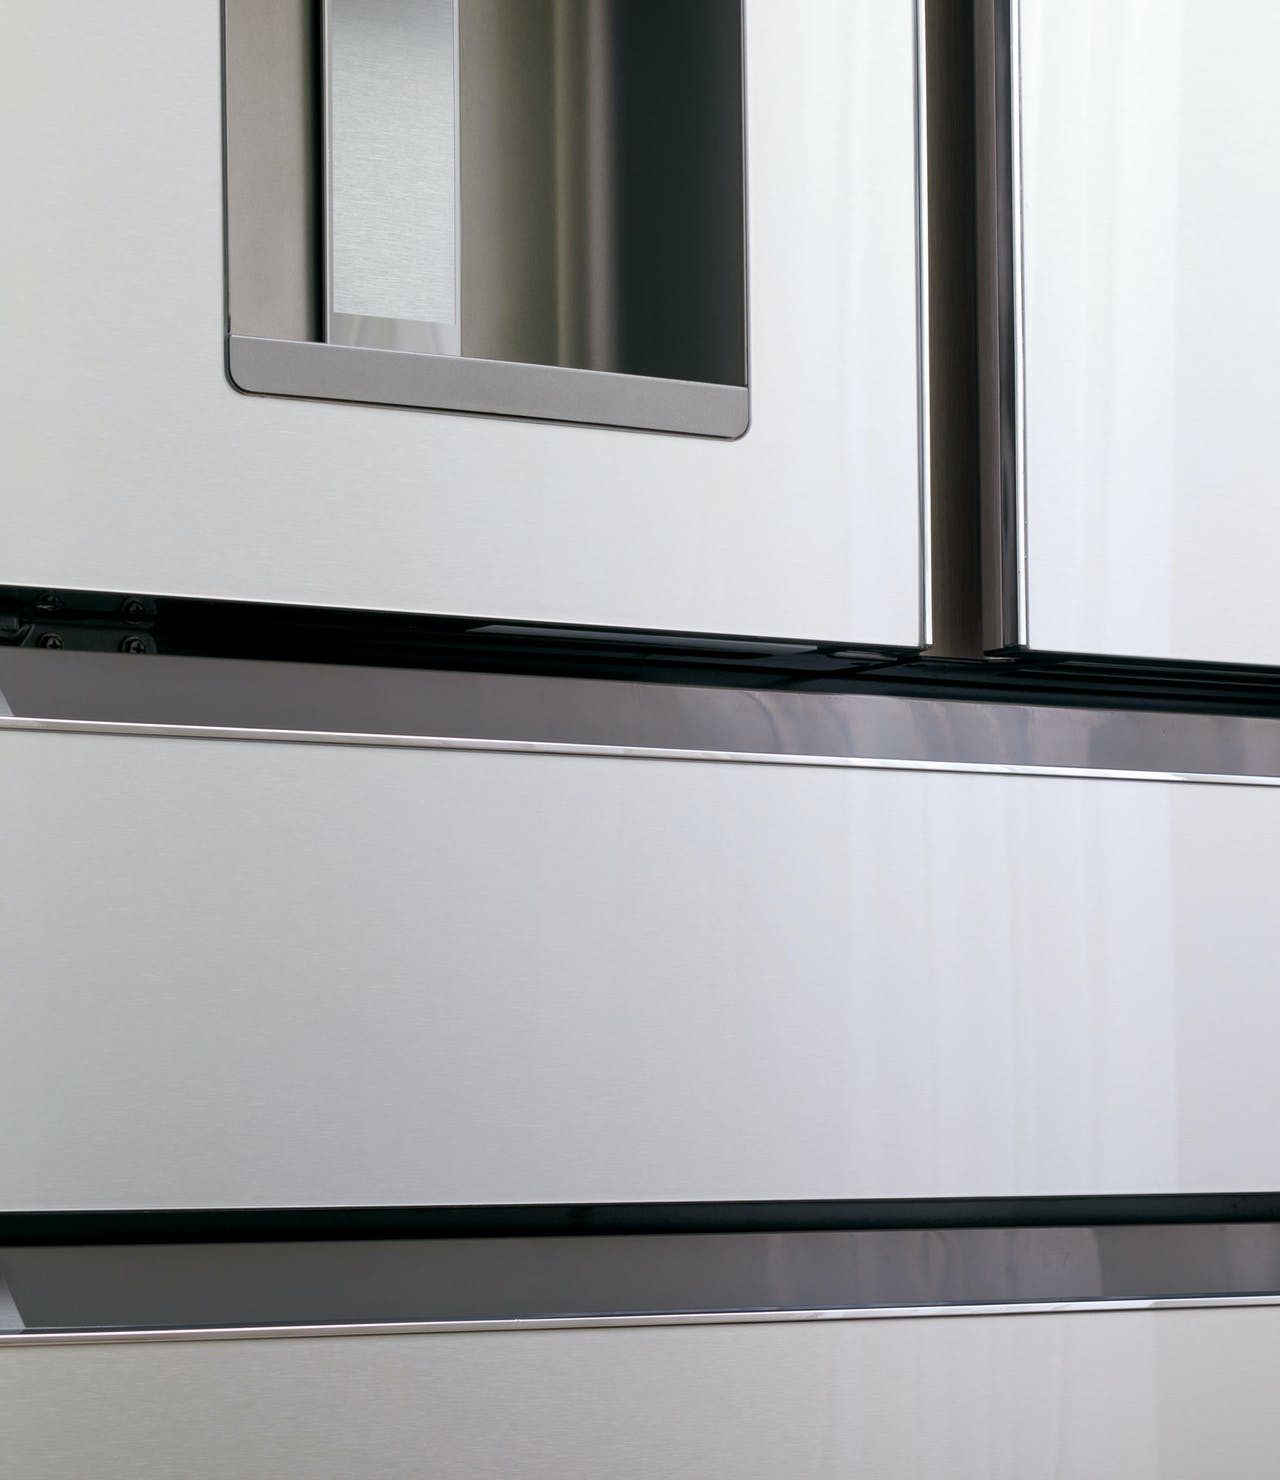 detail of modern glass refrigerator